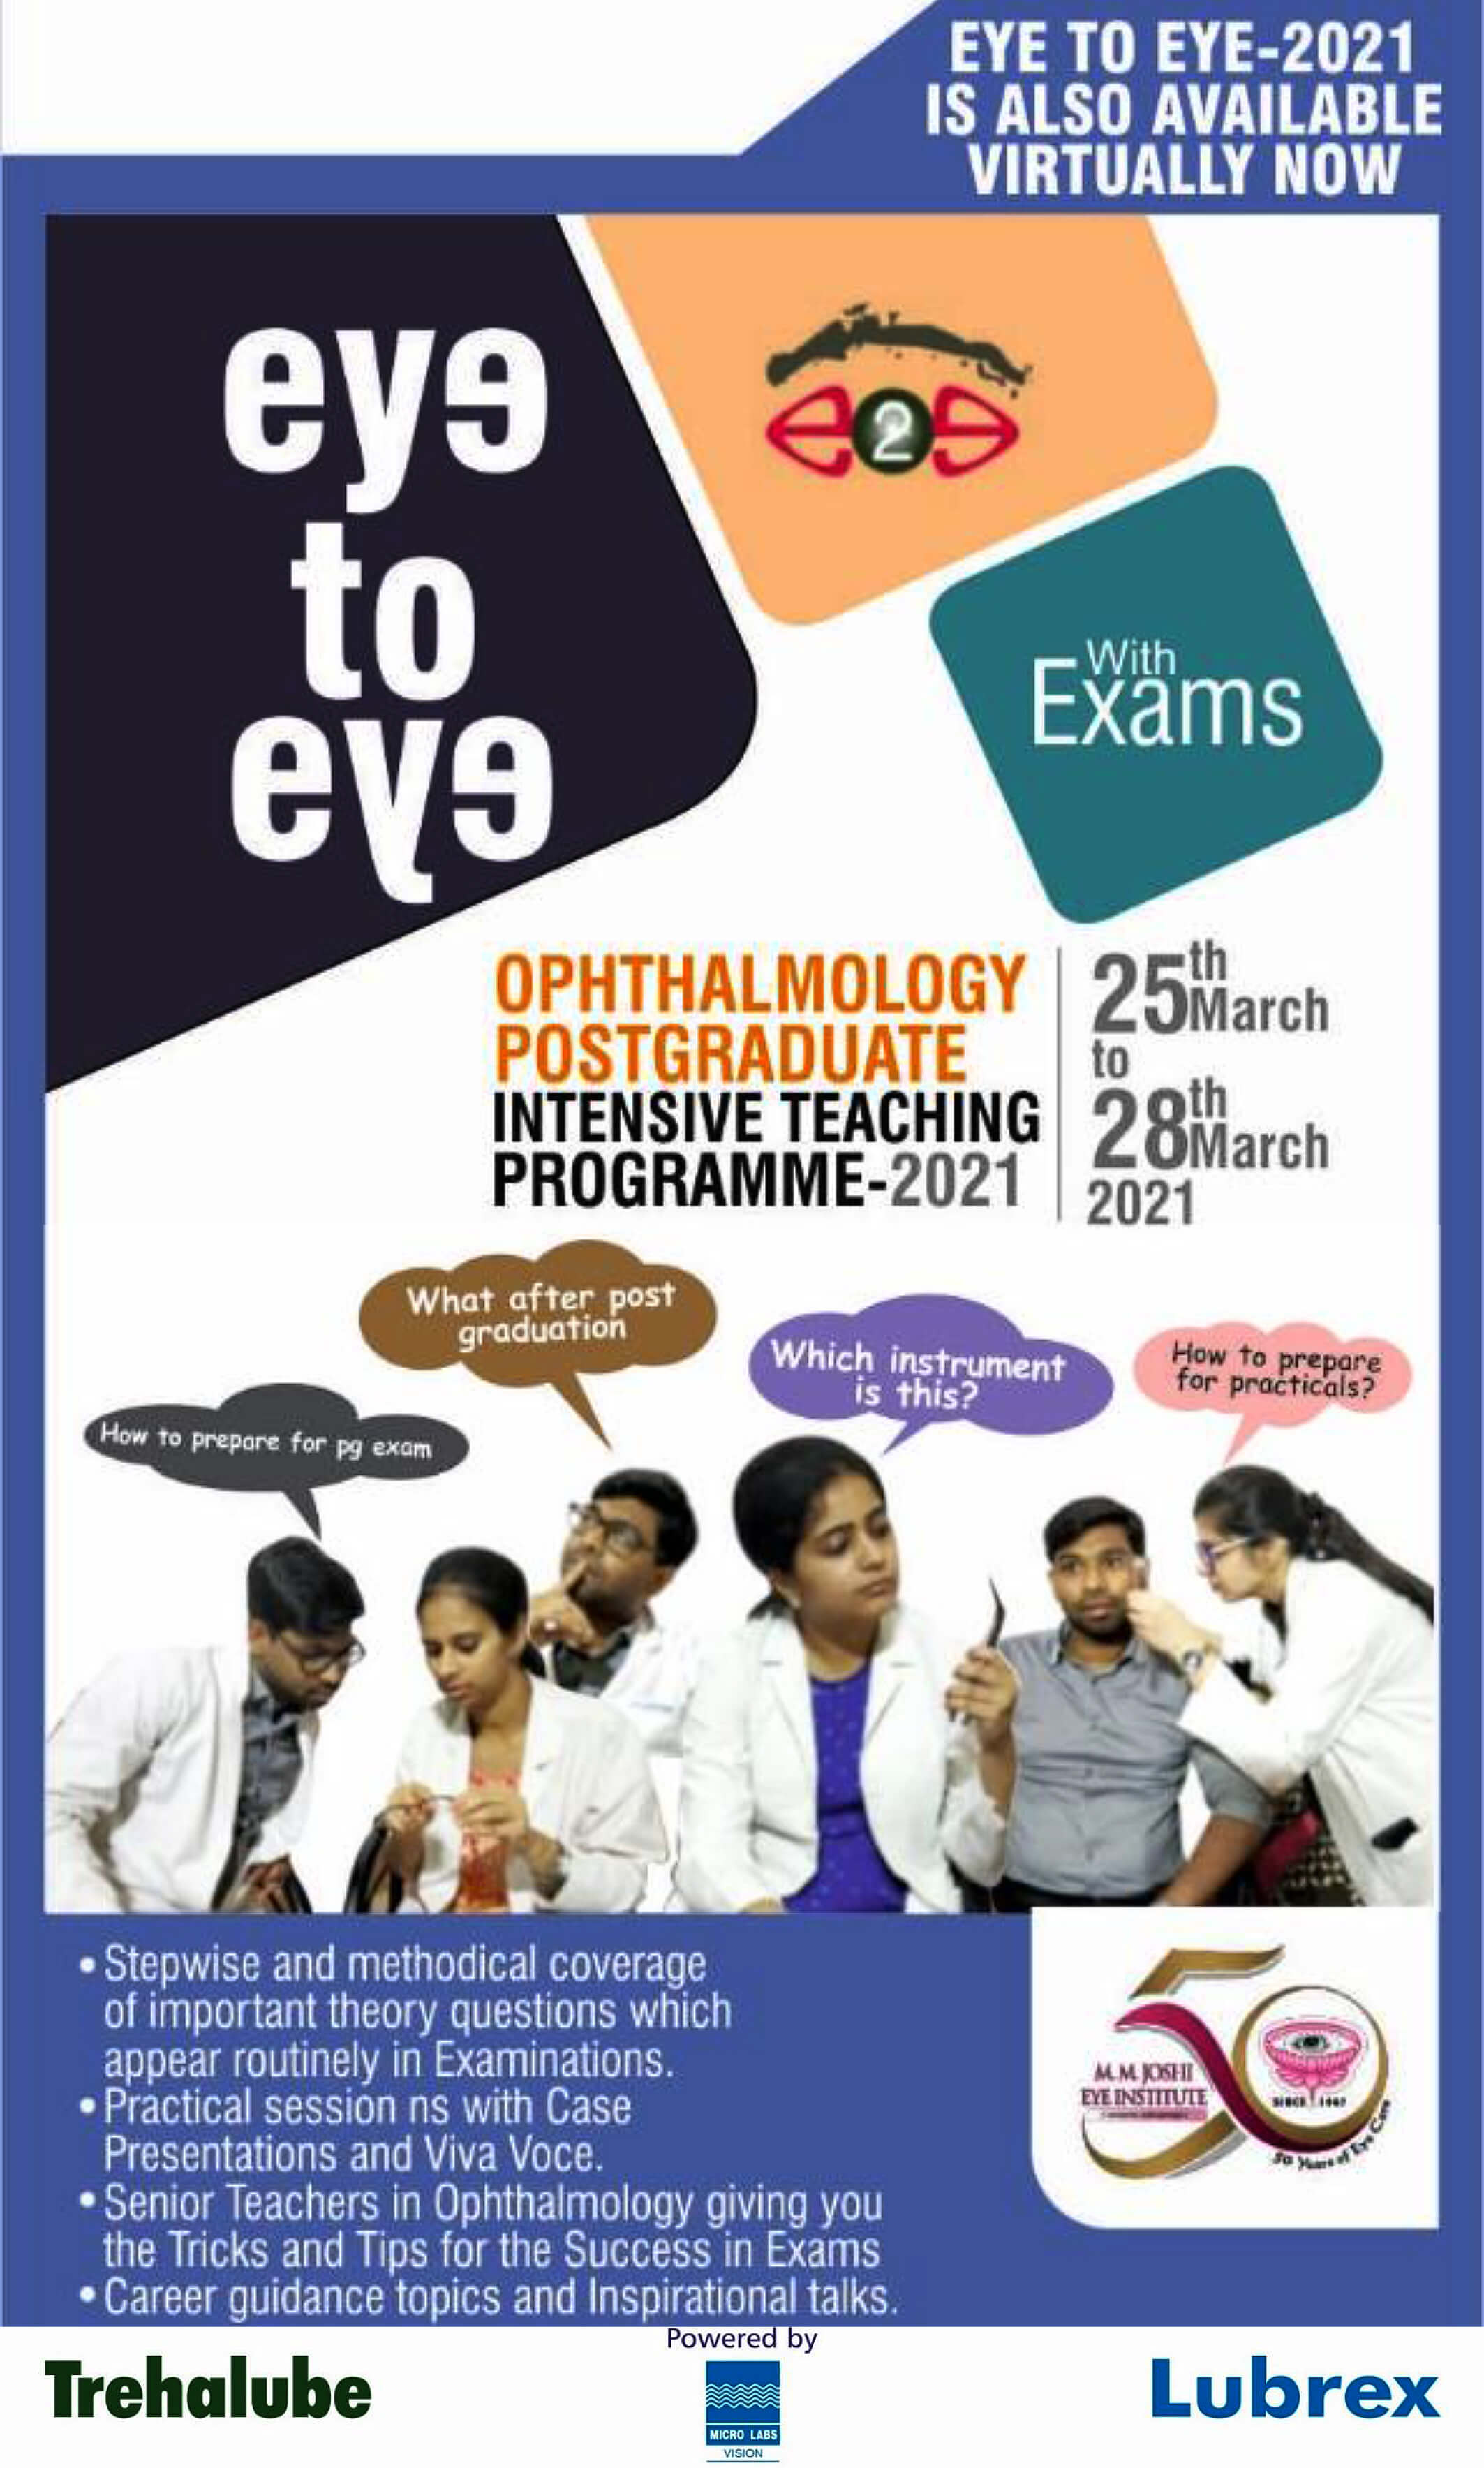 Eye to Eye 2021 - Register Now